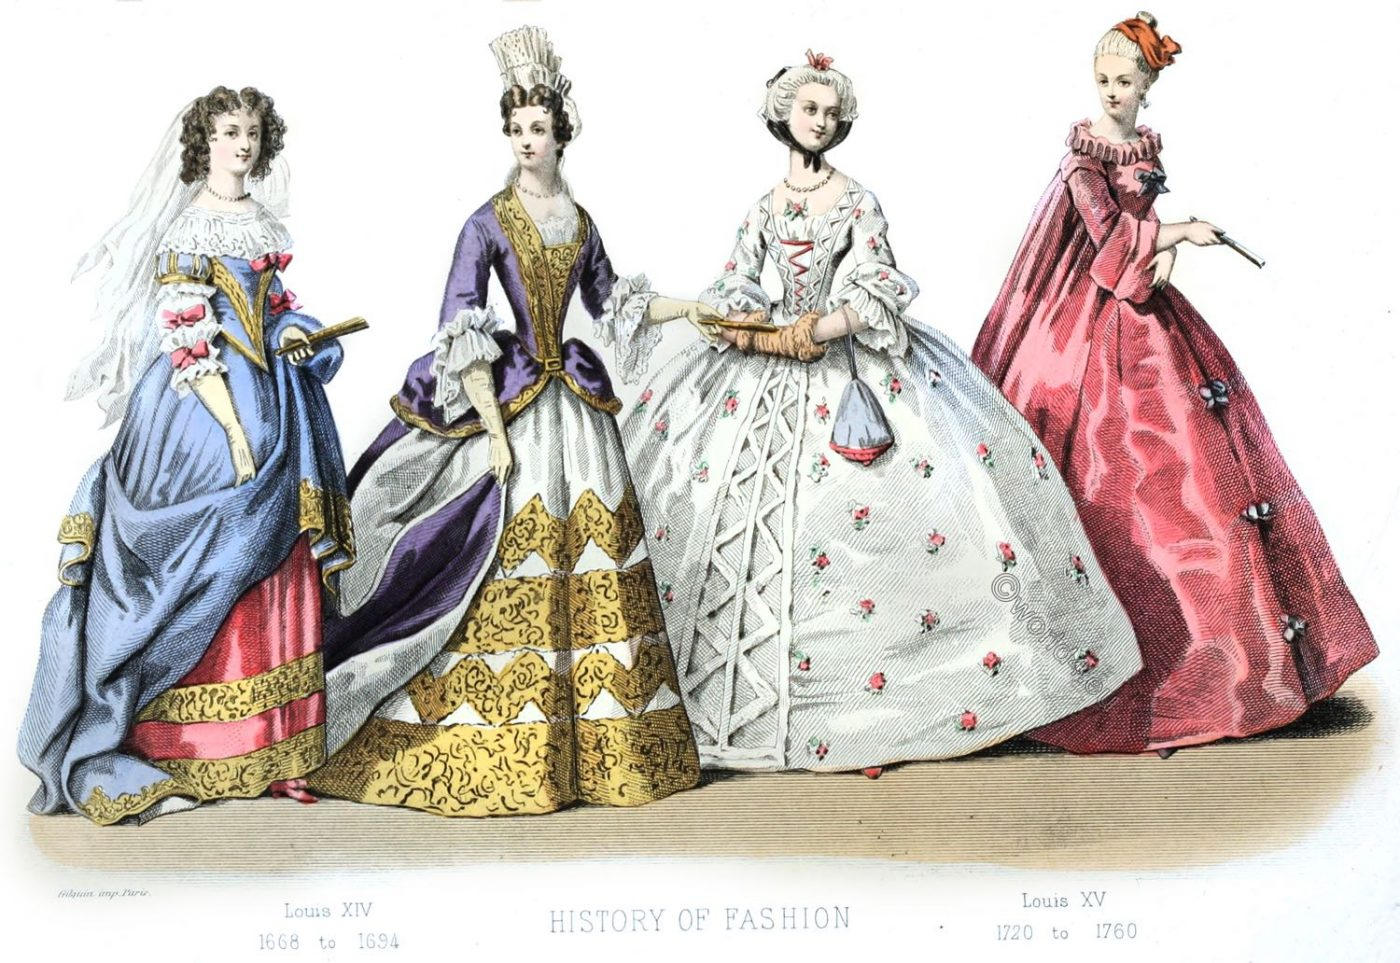 Baroque, Fashion, History, Louis XIV,